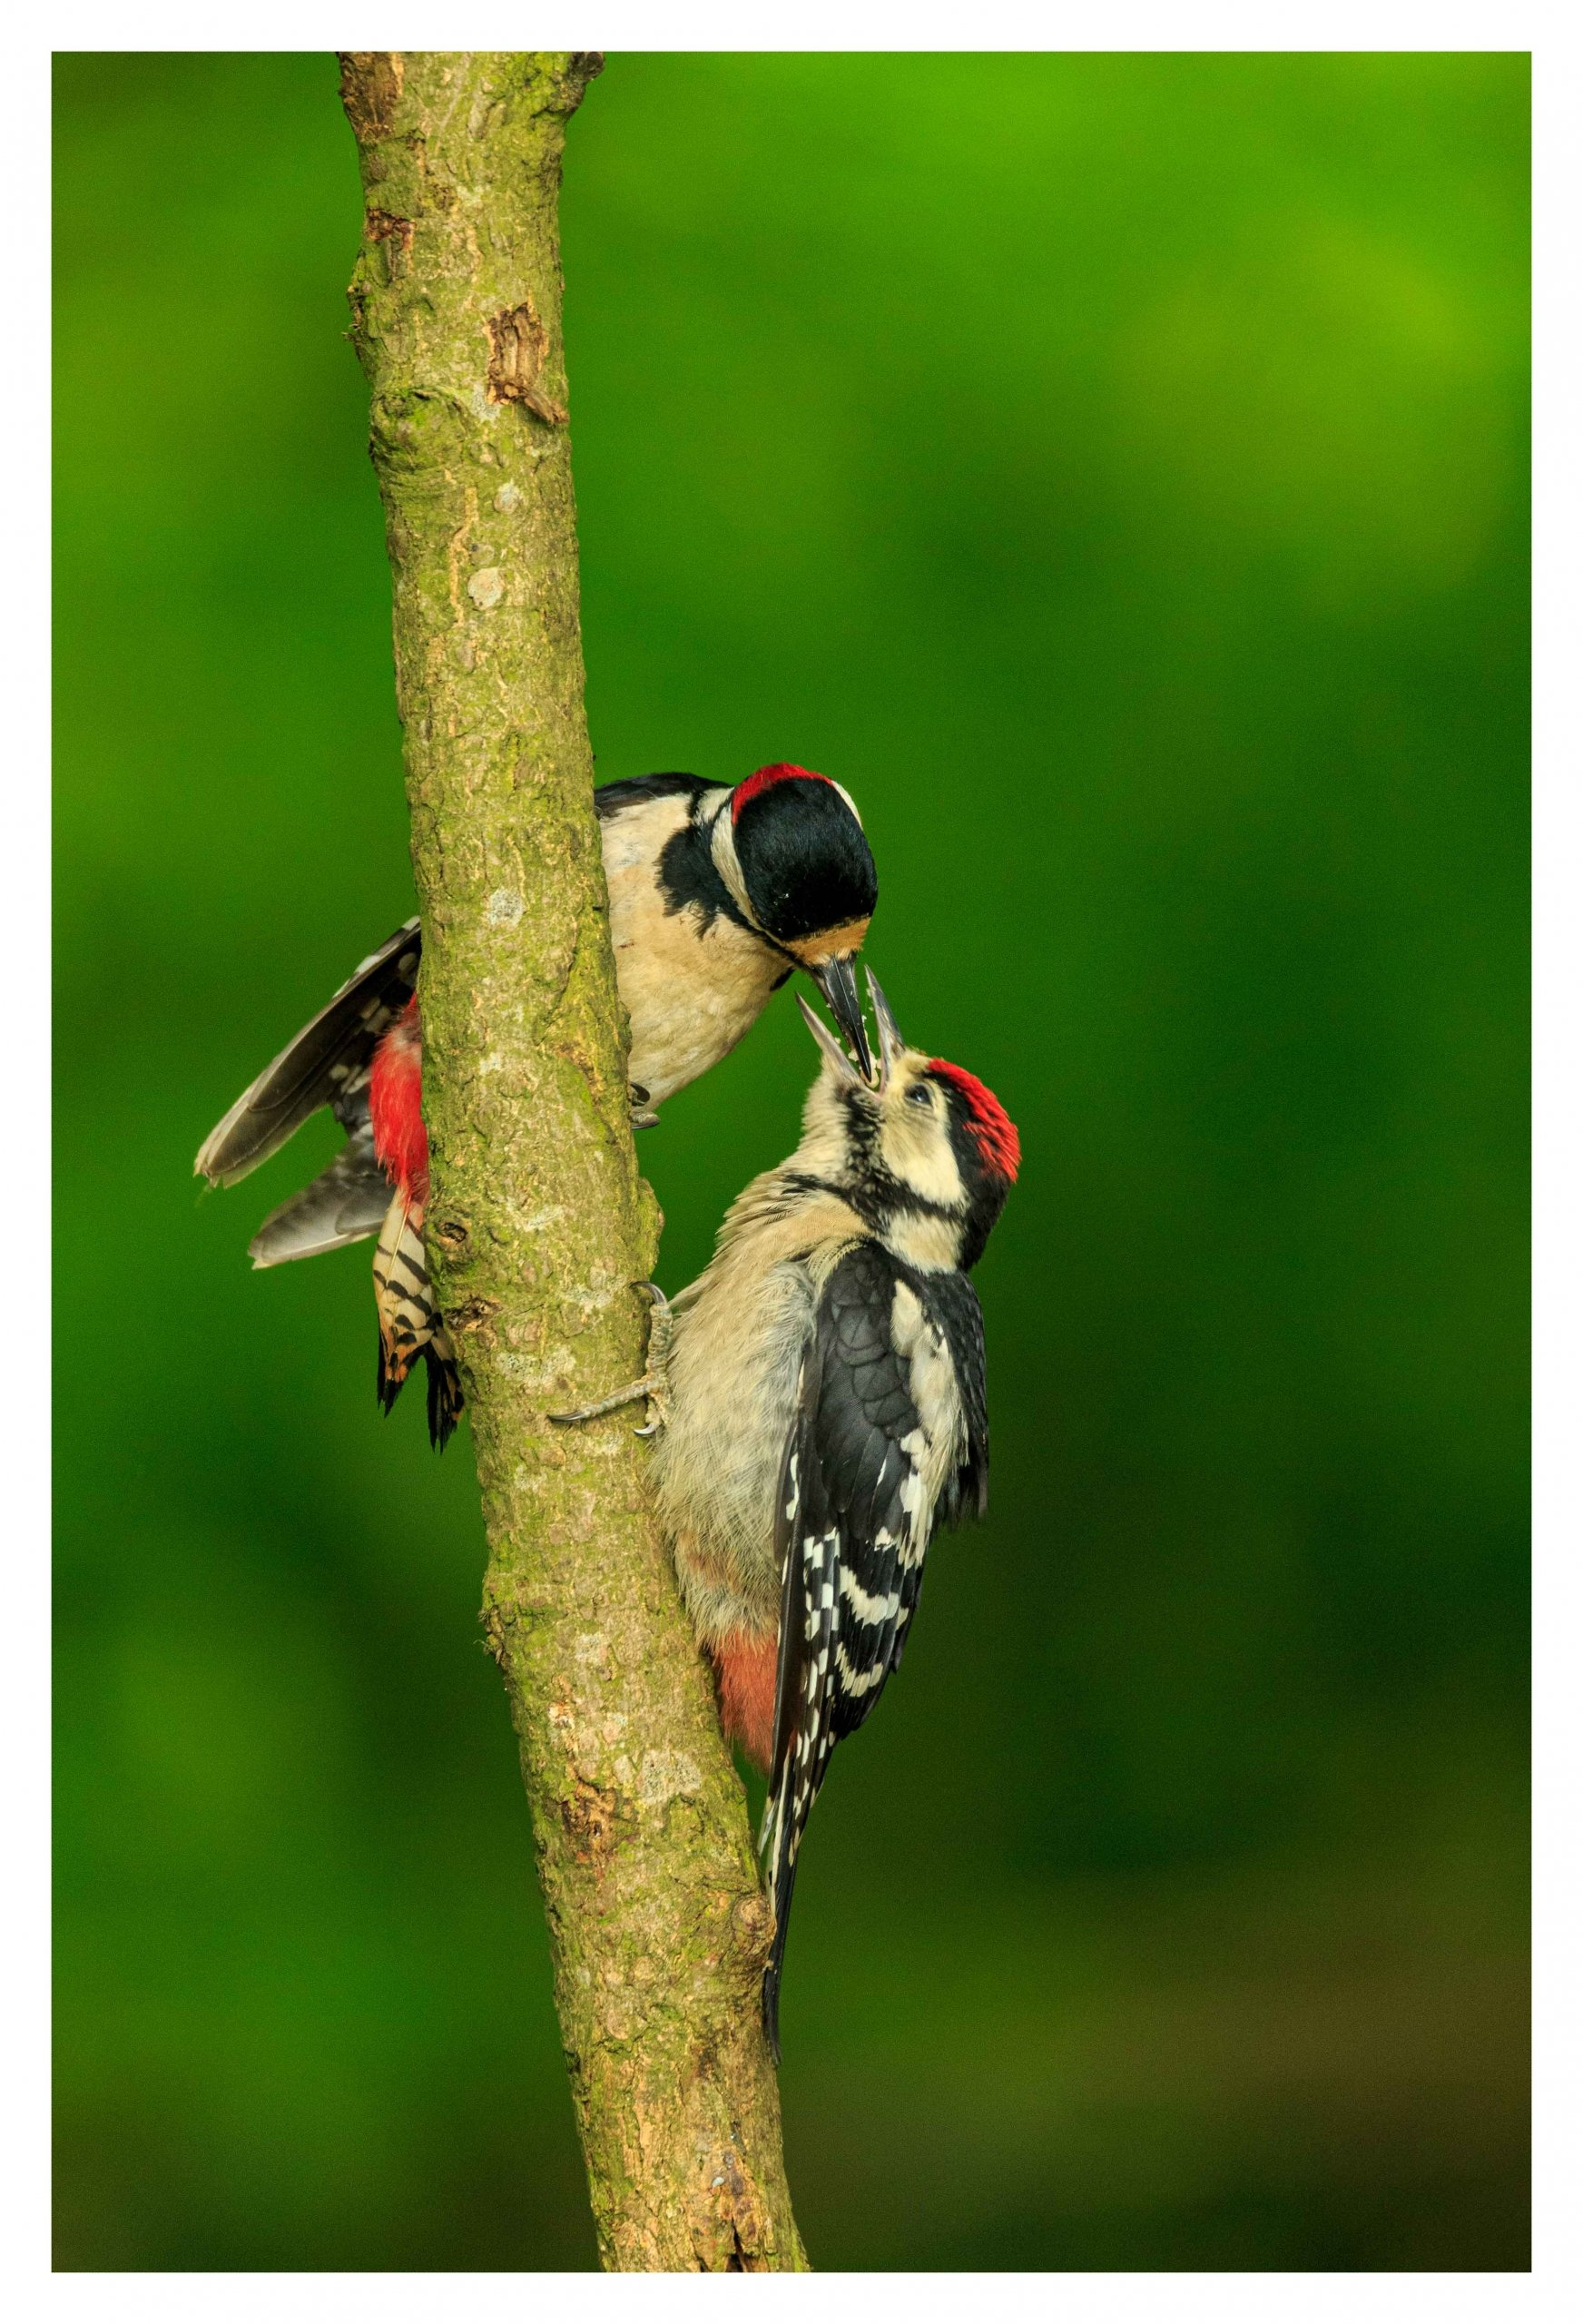 Feeding woodpecker